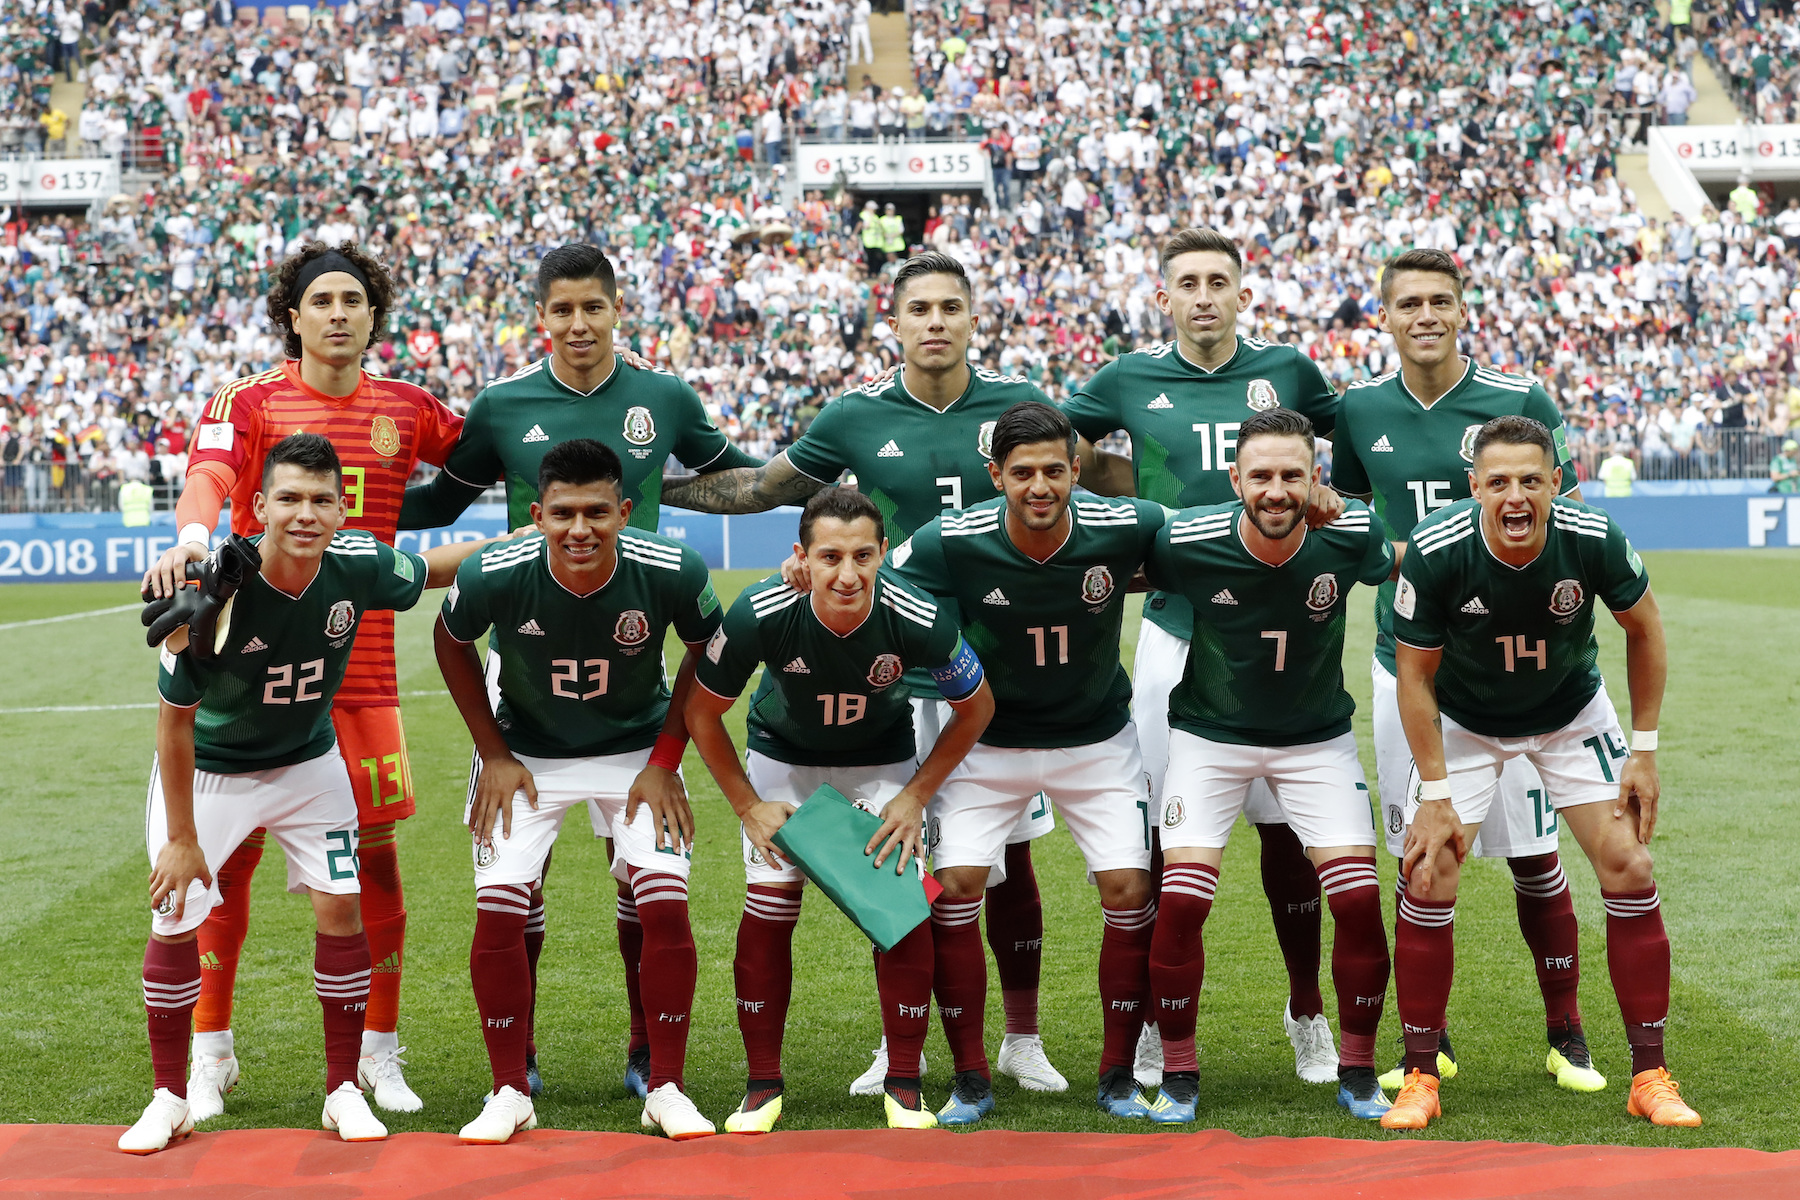 "<div class=""meta image-caption""><div class=""origin-logo origin-image ap""><span>AP</span></div><span class=""caption-text"">Mexico team players pose prior to the start of the group F match between Germany and Mexico at the 2018 soccer World Cup in the Luzhniki Stadium in Moscow, Russia. (AP Photo/Antonio Calanni)</span></div>"